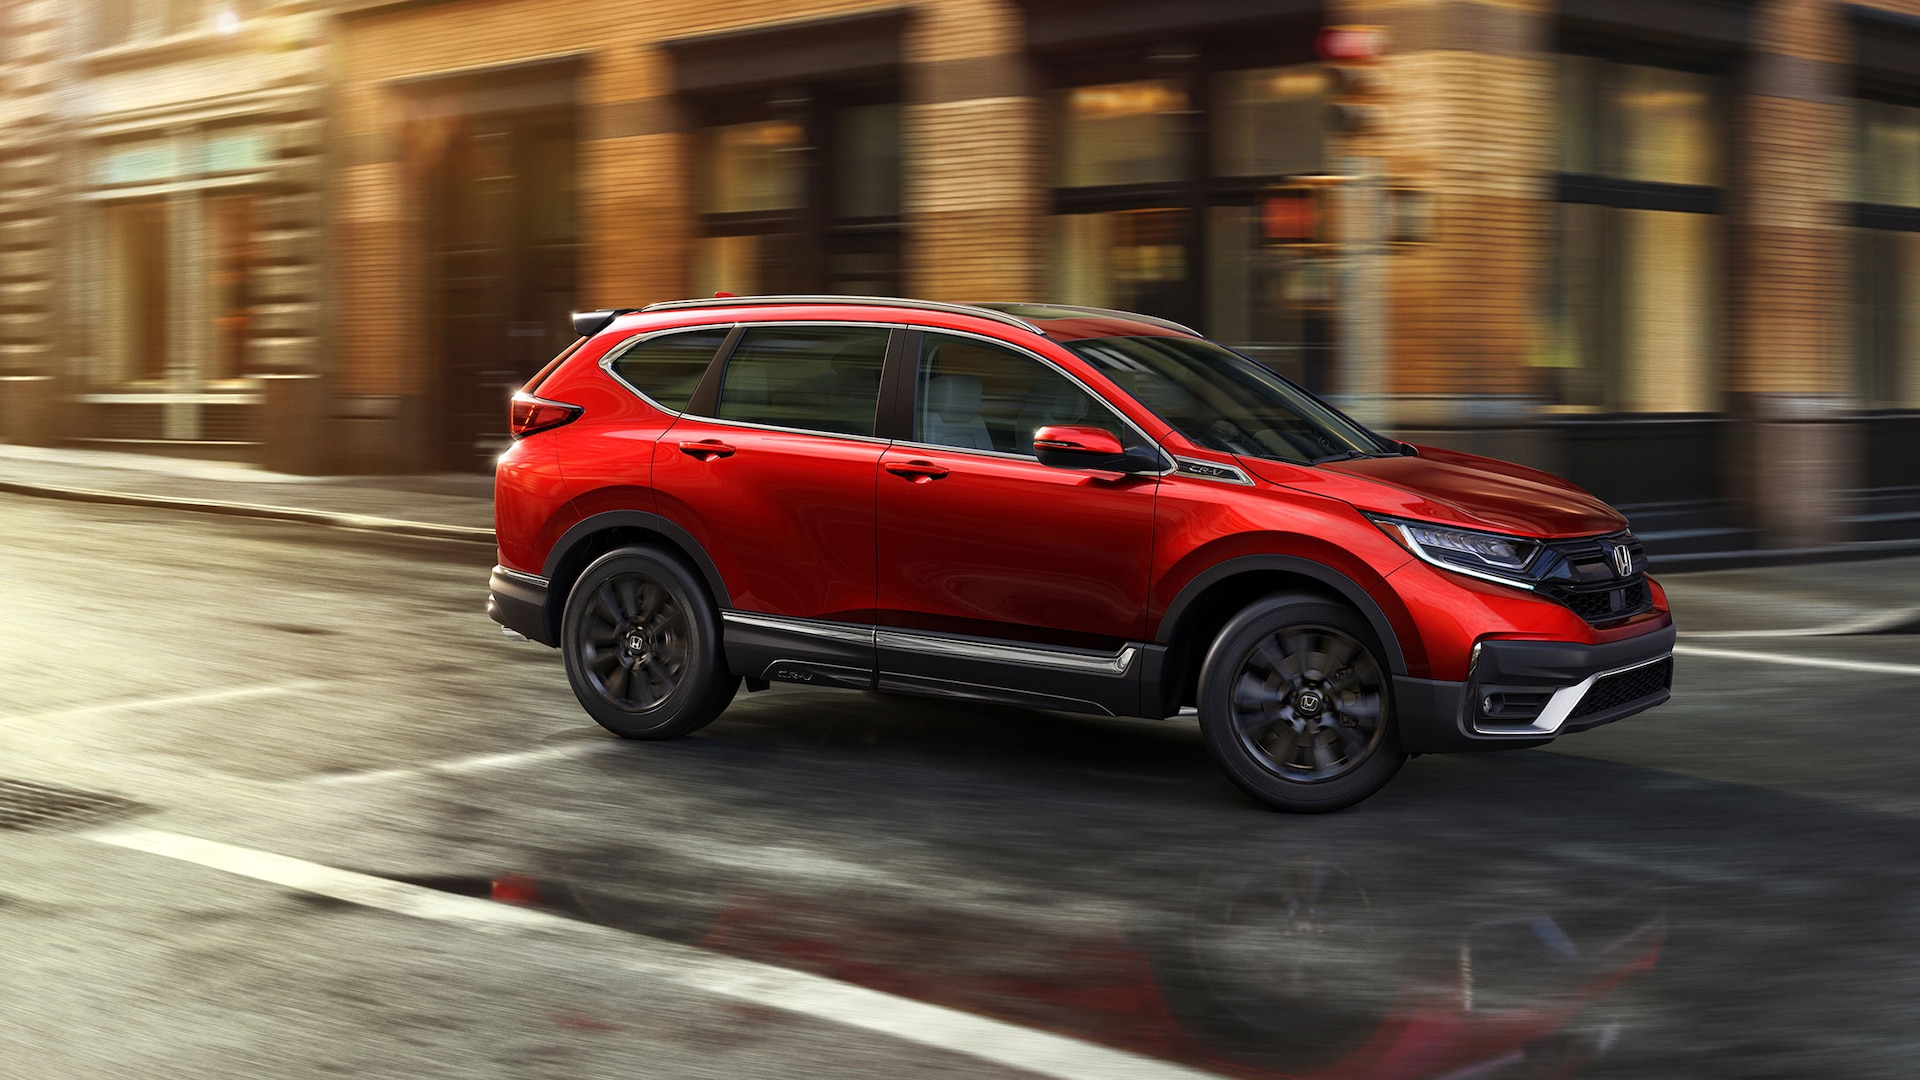 Front passenger-side view of the 2021 Honda CR-V Touring in Radiant Red Metallic with Honda Genuine Accessories, driving in an urban environment.